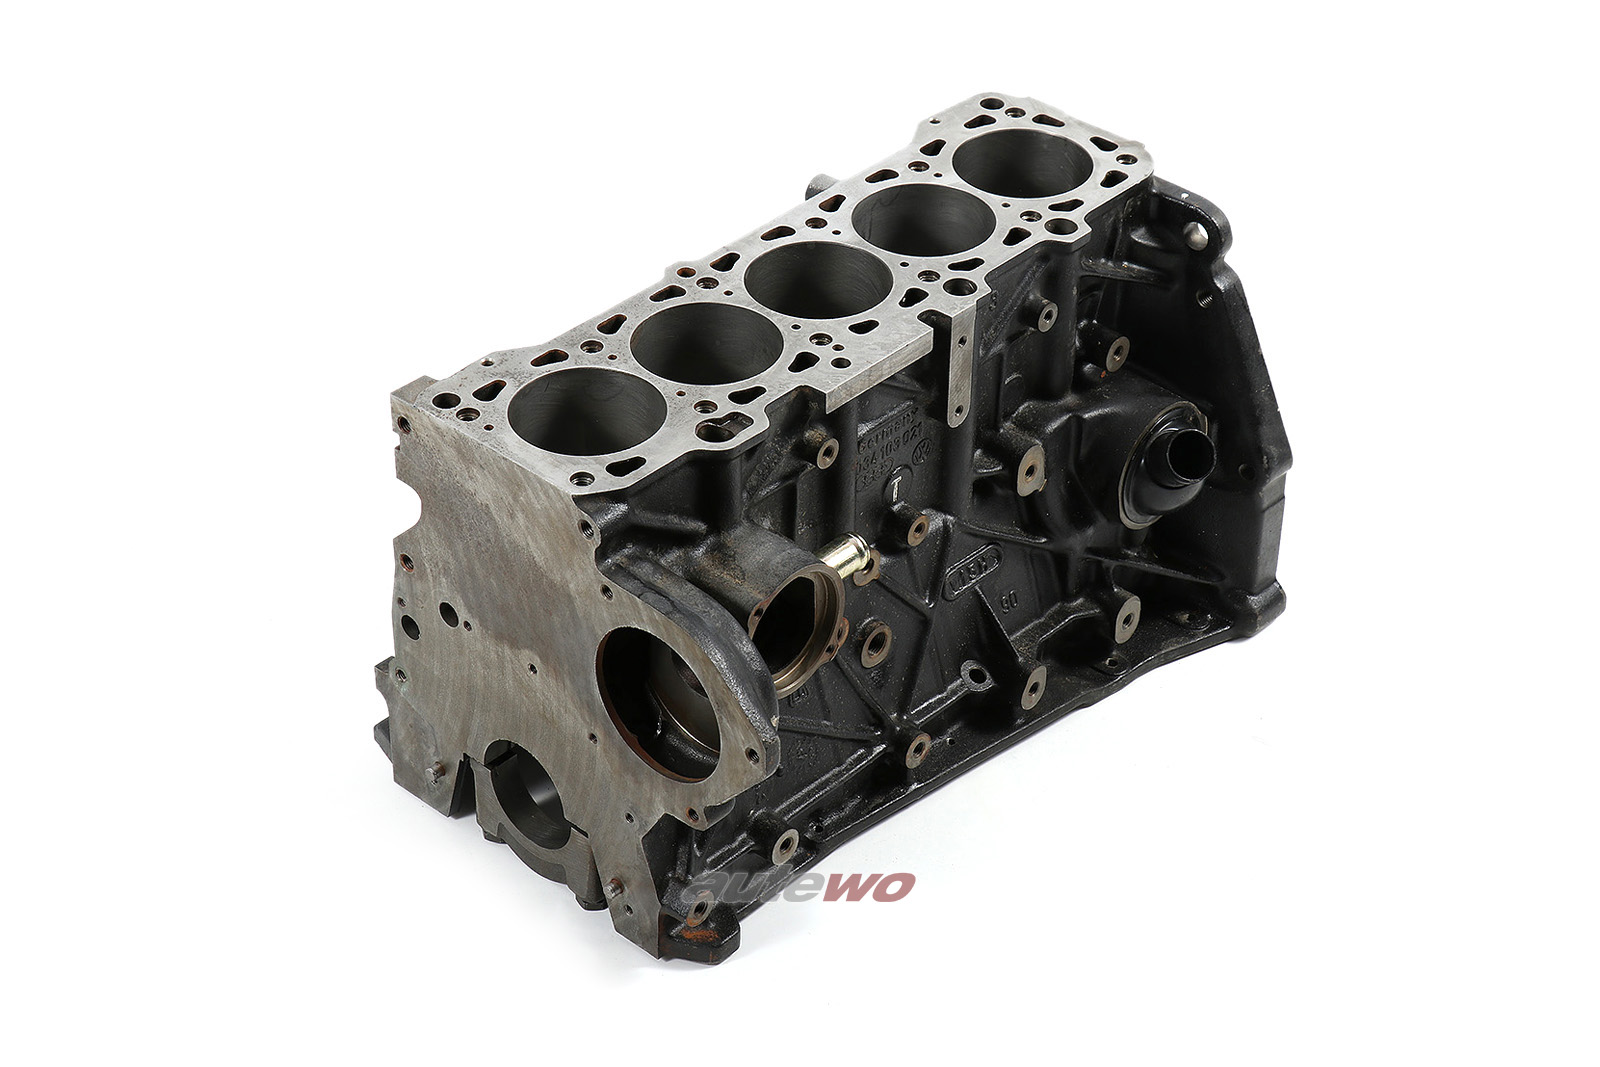 054103021 NEU Audi/VW 90/Coupe Typ 81/85/100/200 Typ 44 Motorblock 81mm